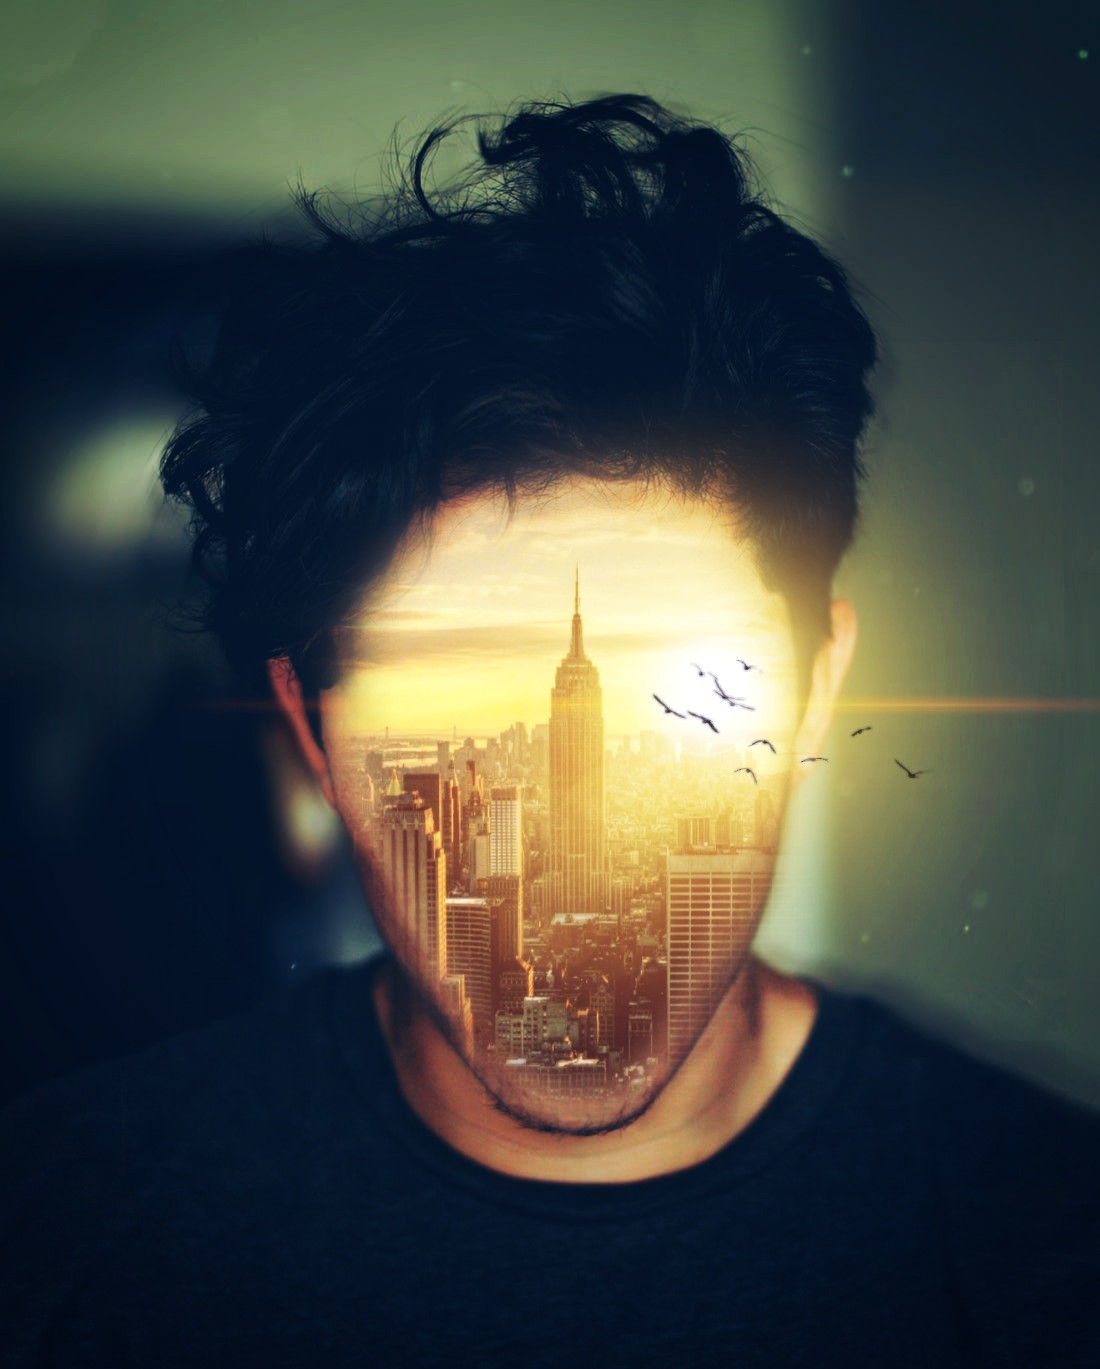 #freetoedit #man #face #doubleexposure #surrealism #city #birds #sun #nature #picsart